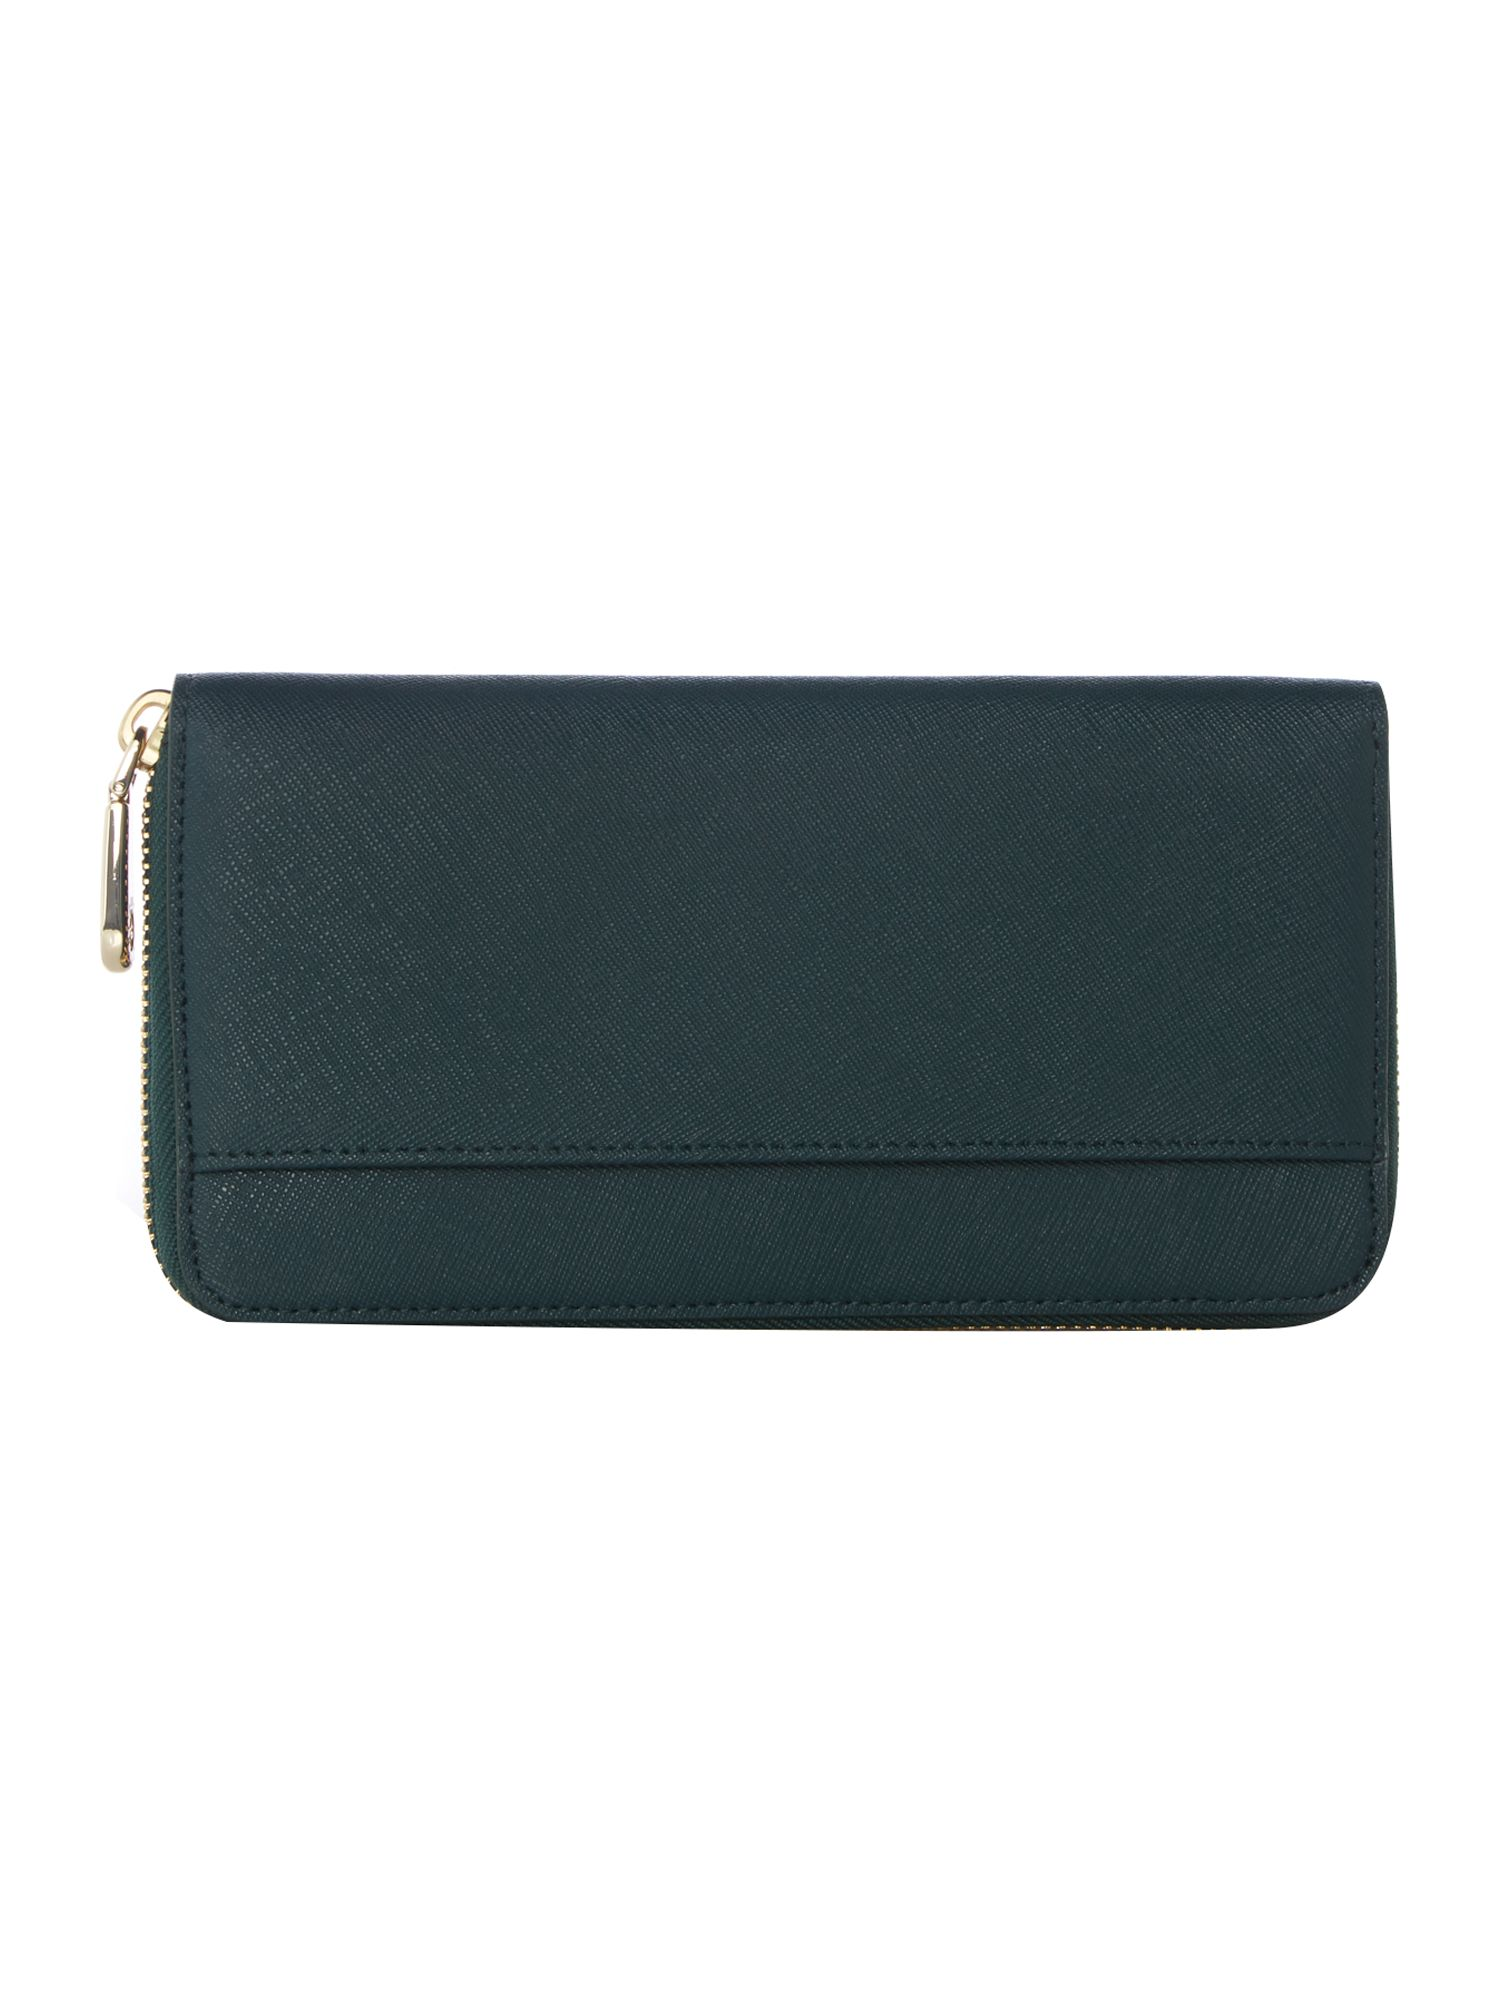 Bryant park green large zip around purse